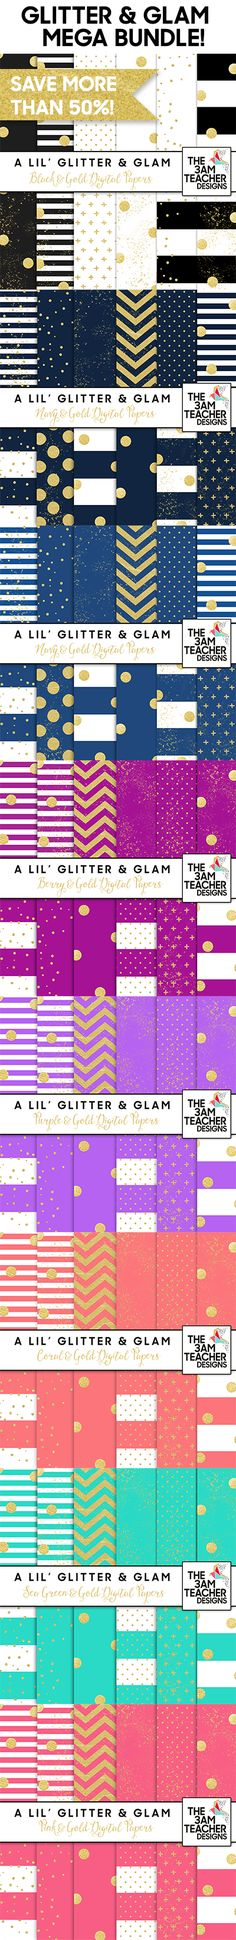 Glitter and Glam Digital Papers Mega Bundle created by The 3AM Teacher Designs   Michelle Tsivgadellis. The bundle includes 96 hand-painted digital paper patterns to choose from. Each set includes a fun color paired with a pretty glitter gold.   http://www.3amteacher.com/store/p156/p.html